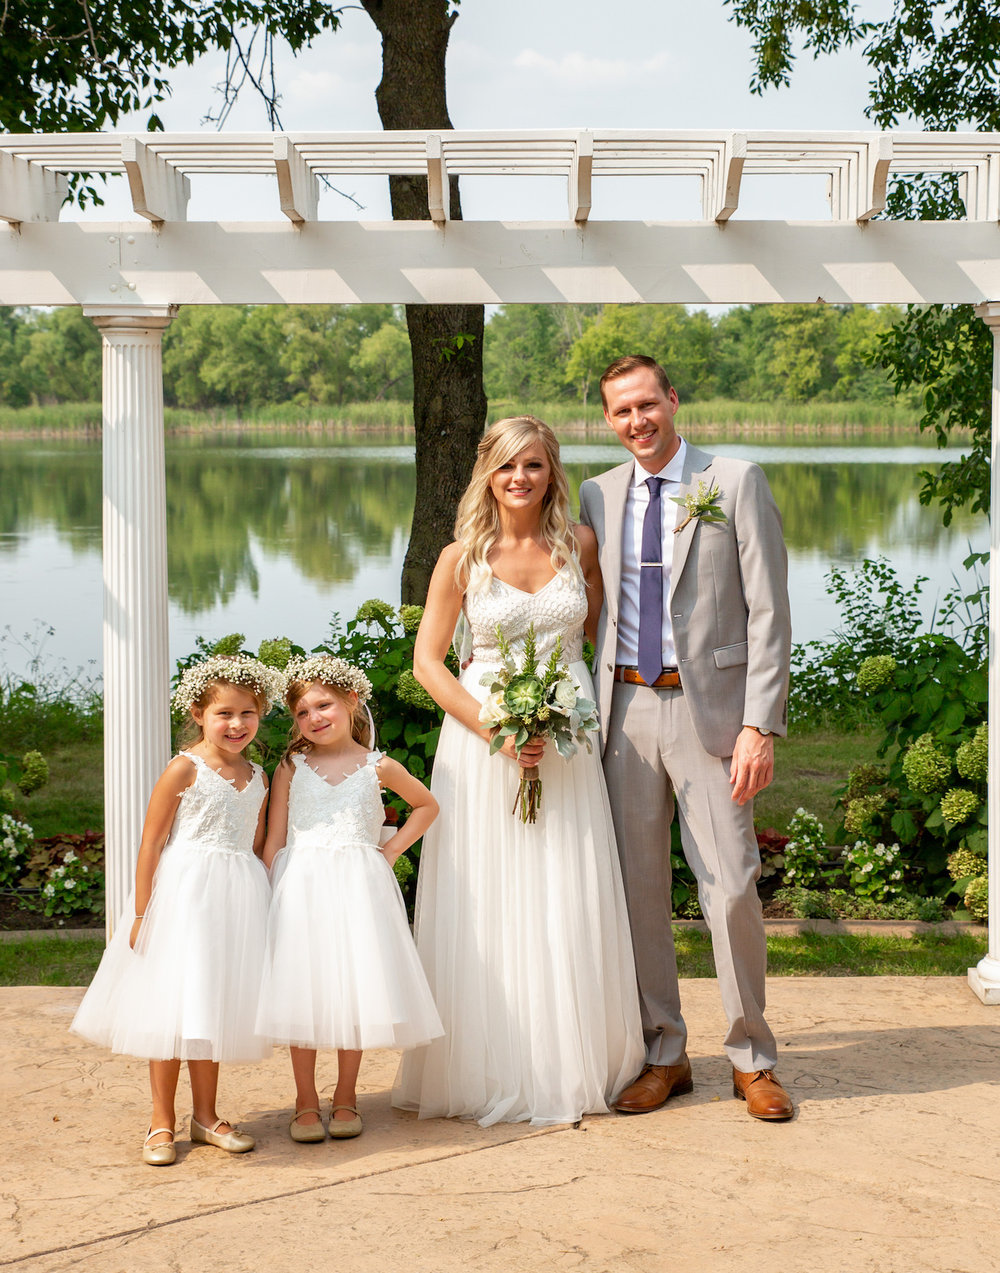 Cindyrellas Garden outdoor wedding ceremony by a private lake with wooded backdrops, flower girls in white with floral crowns